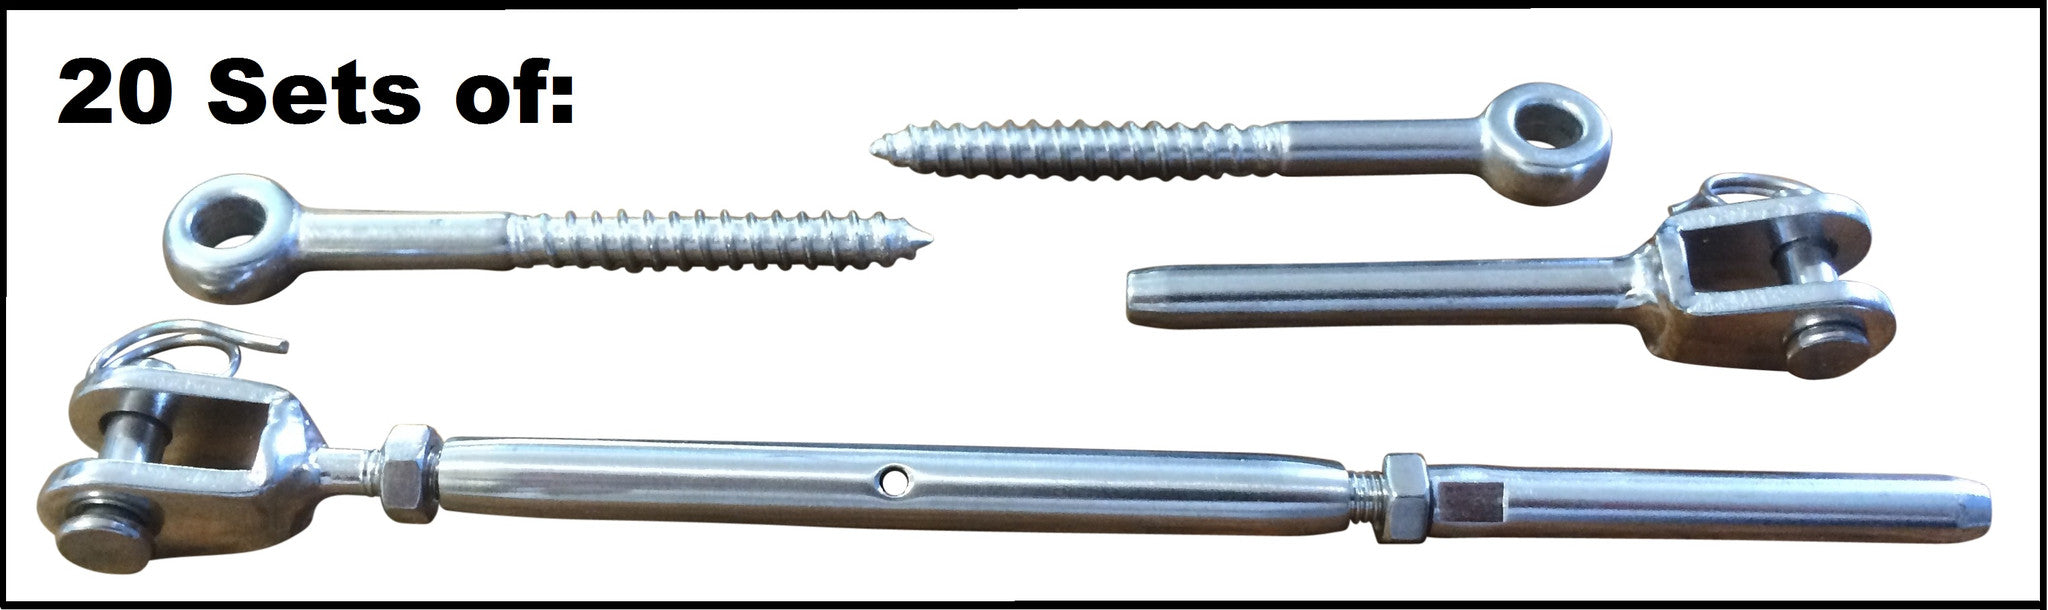 20x Stainless Wire Rope Balustrade Kit – Simply Wholesale